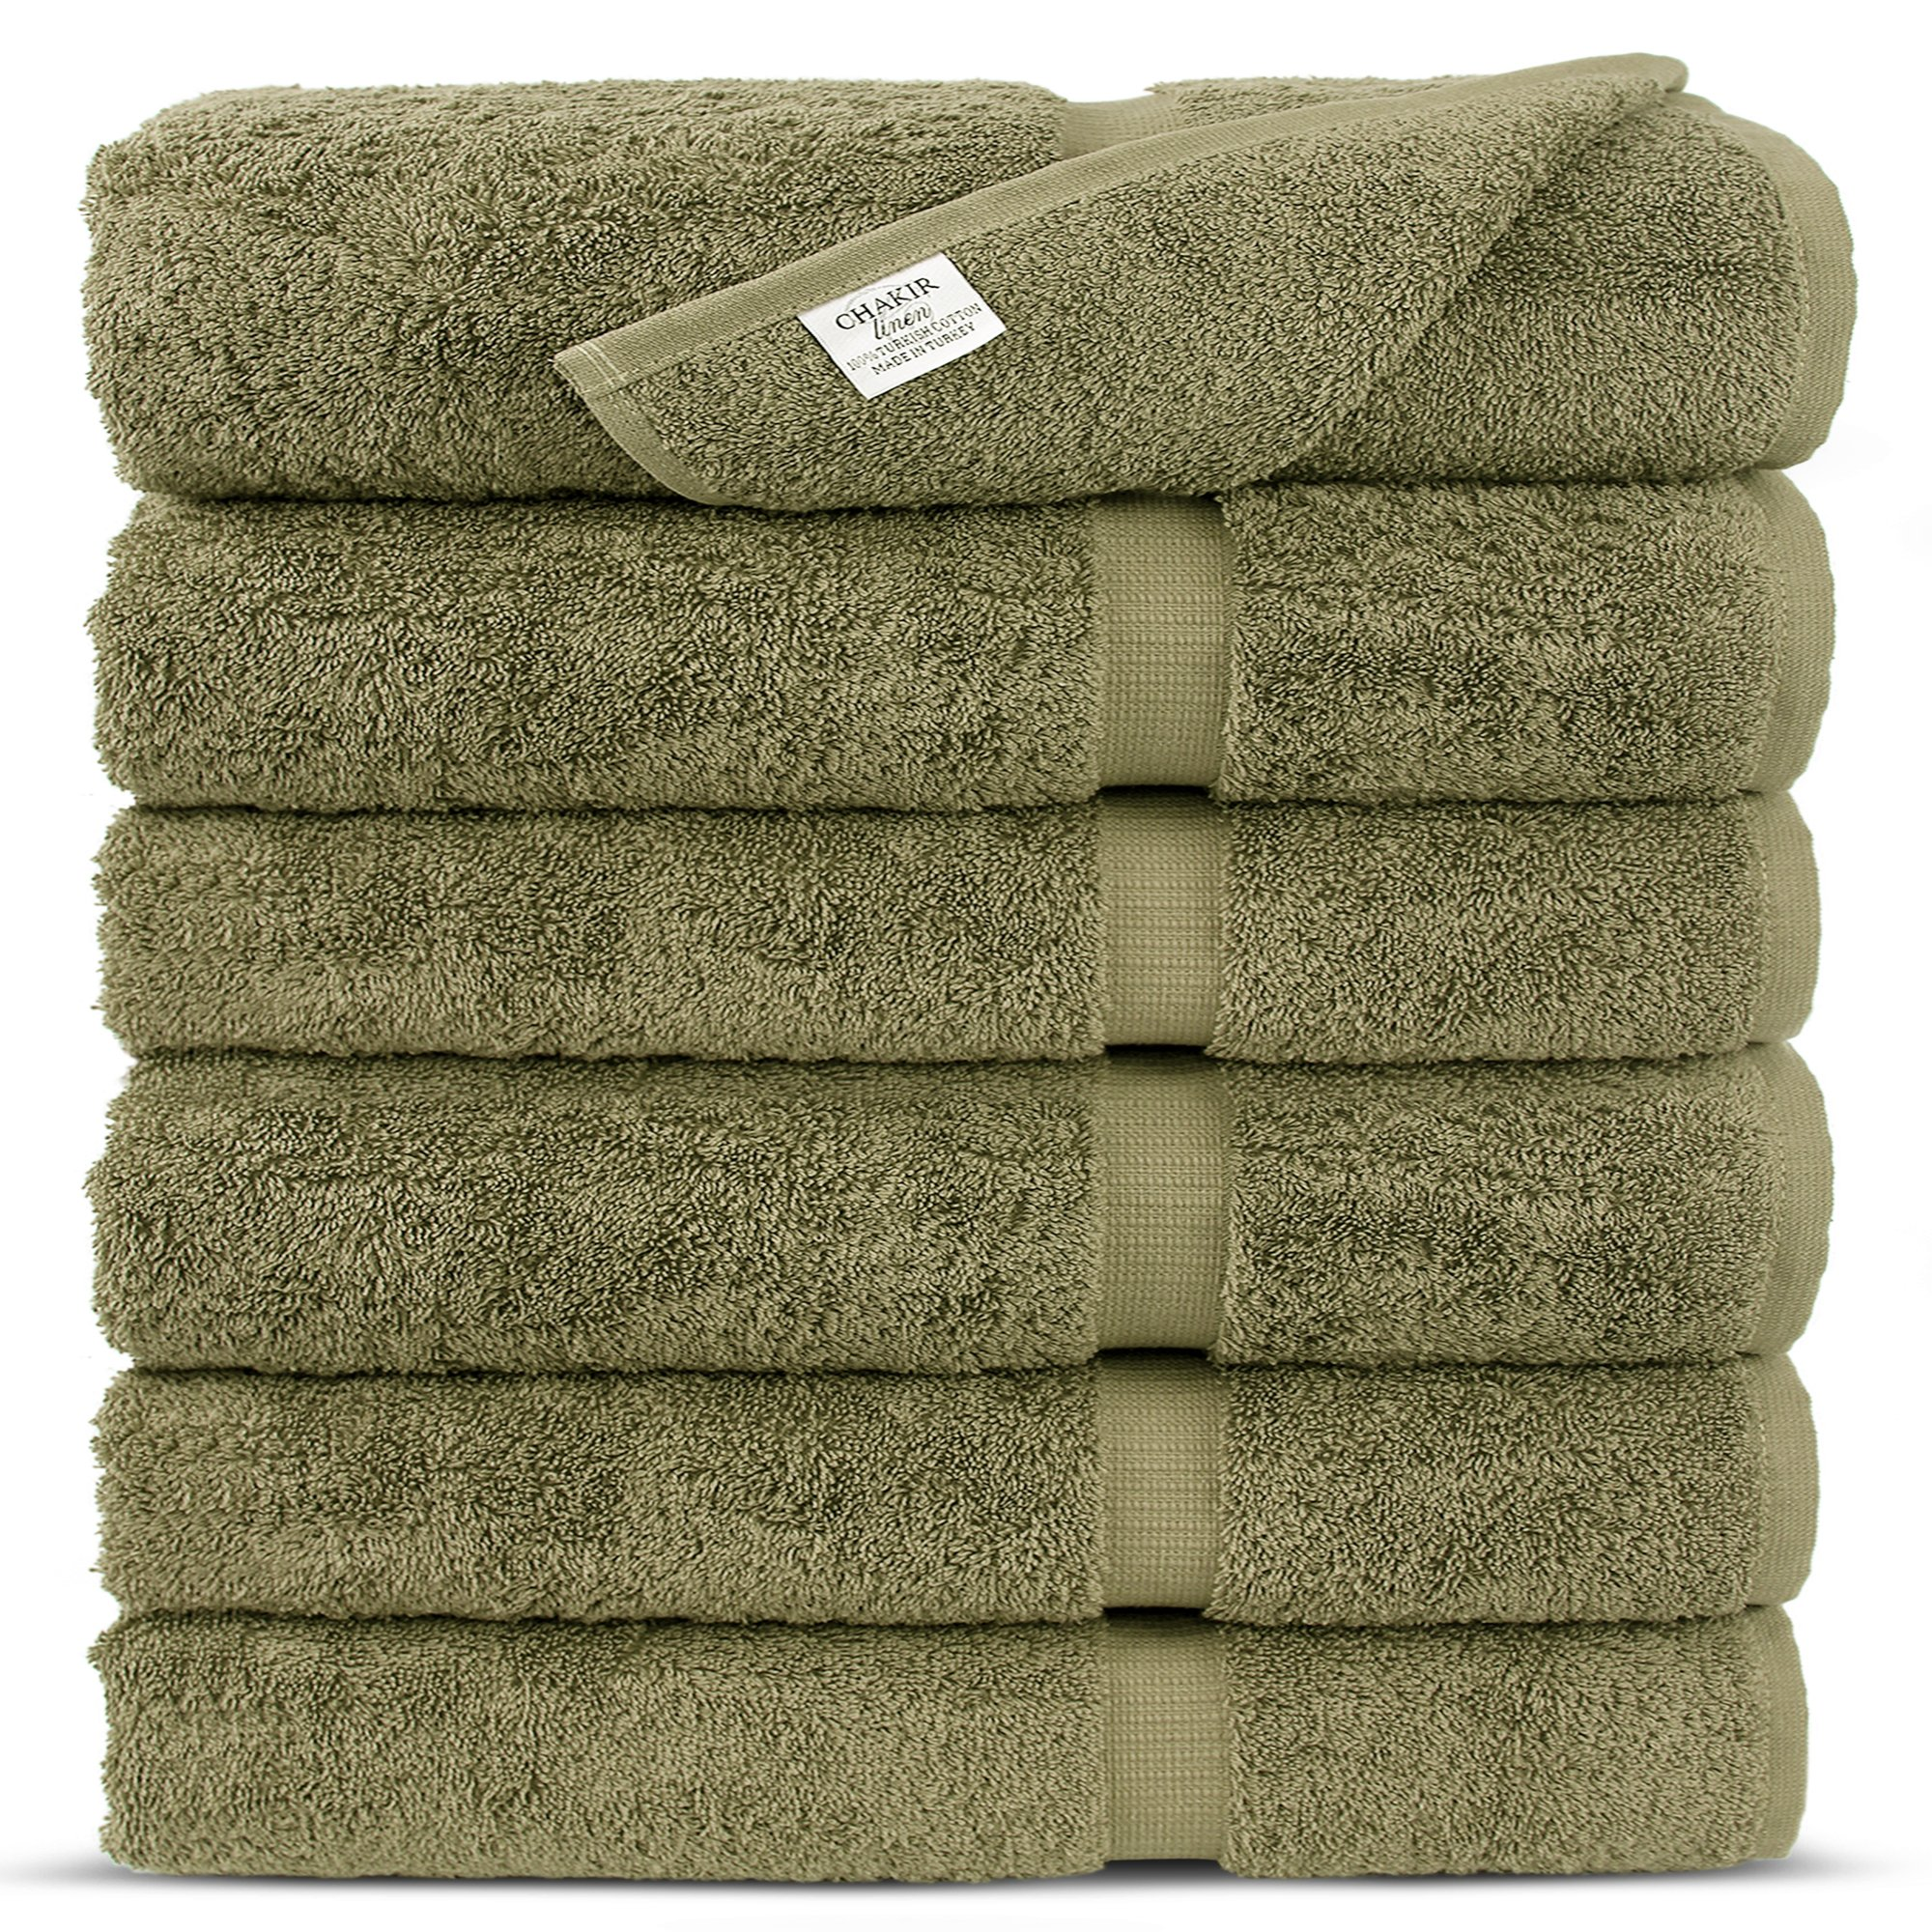 Premium Long-stable Turkish Cotton-Eco Friendly 6-Piece Washcloths (Driftwood)